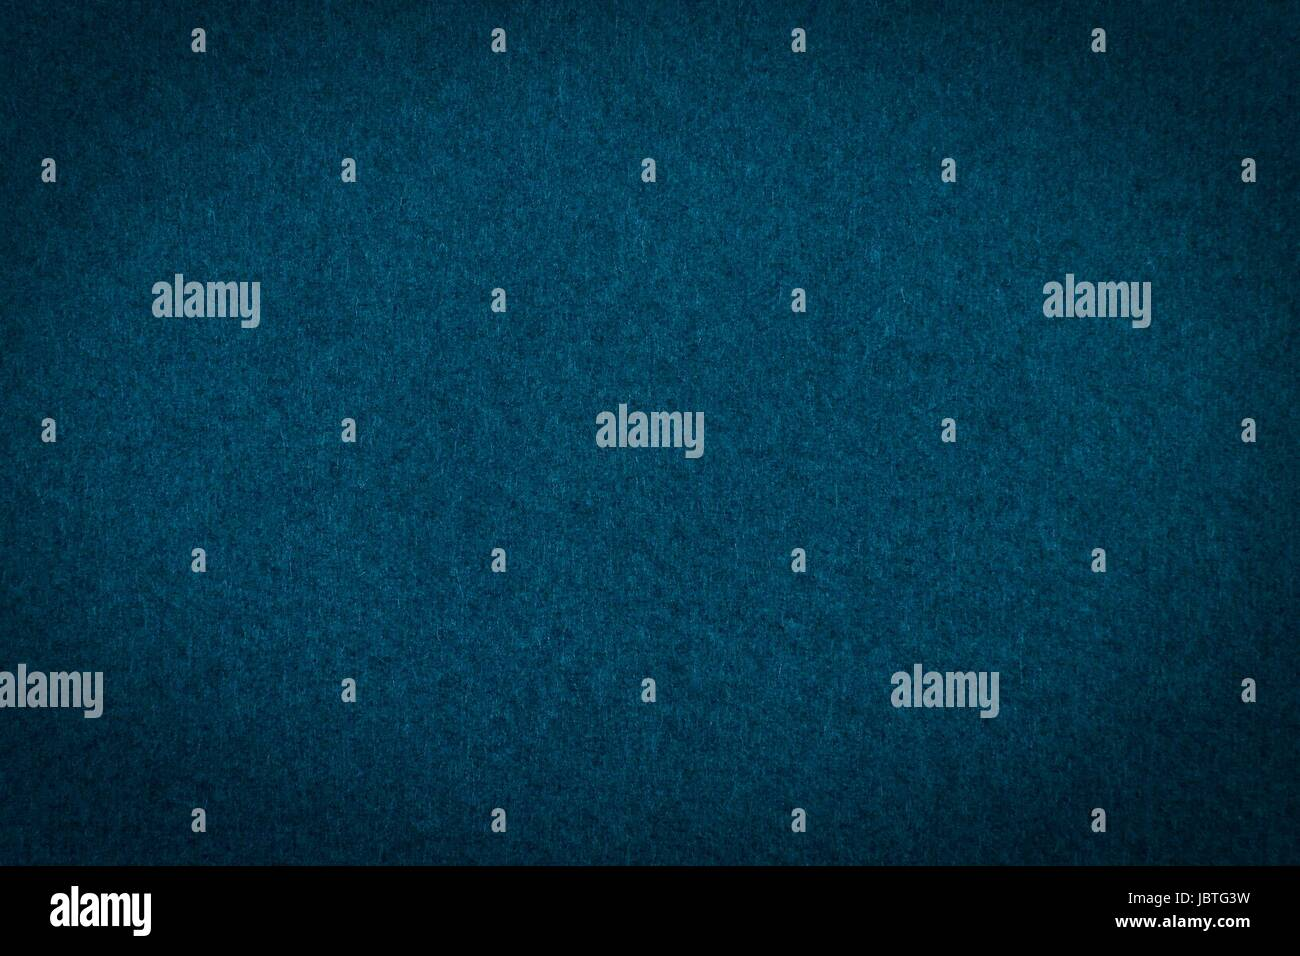 Blueprint Paper Texture Stockfotos & Blueprint Paper Texture Bilder ...